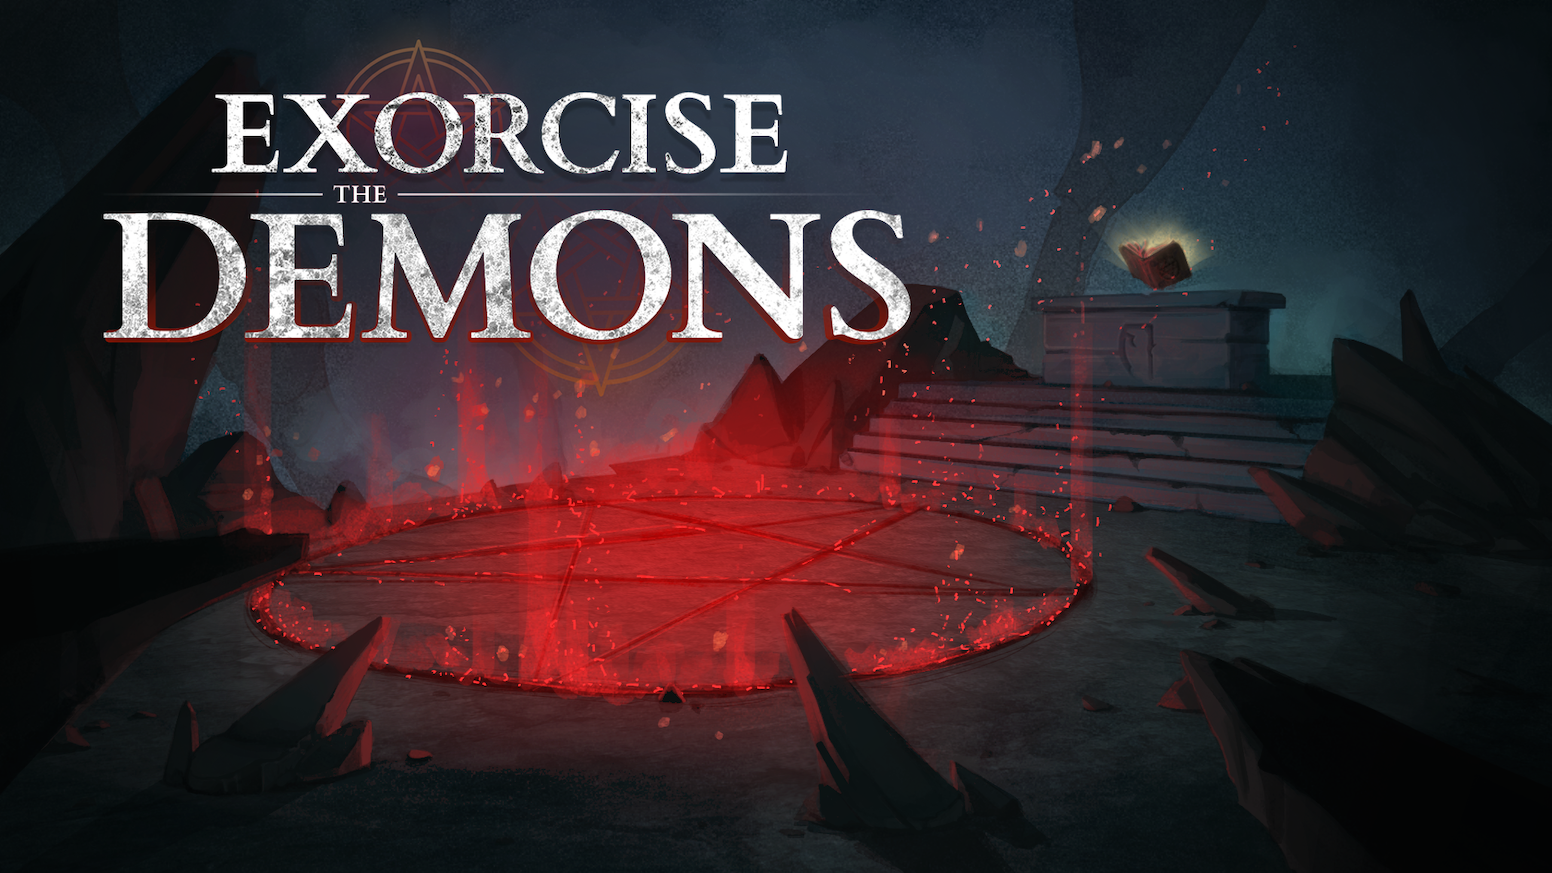 Exorcise The Demons is a cooperative game. Play as an exorcist while your friends tell you how to do your rituals!